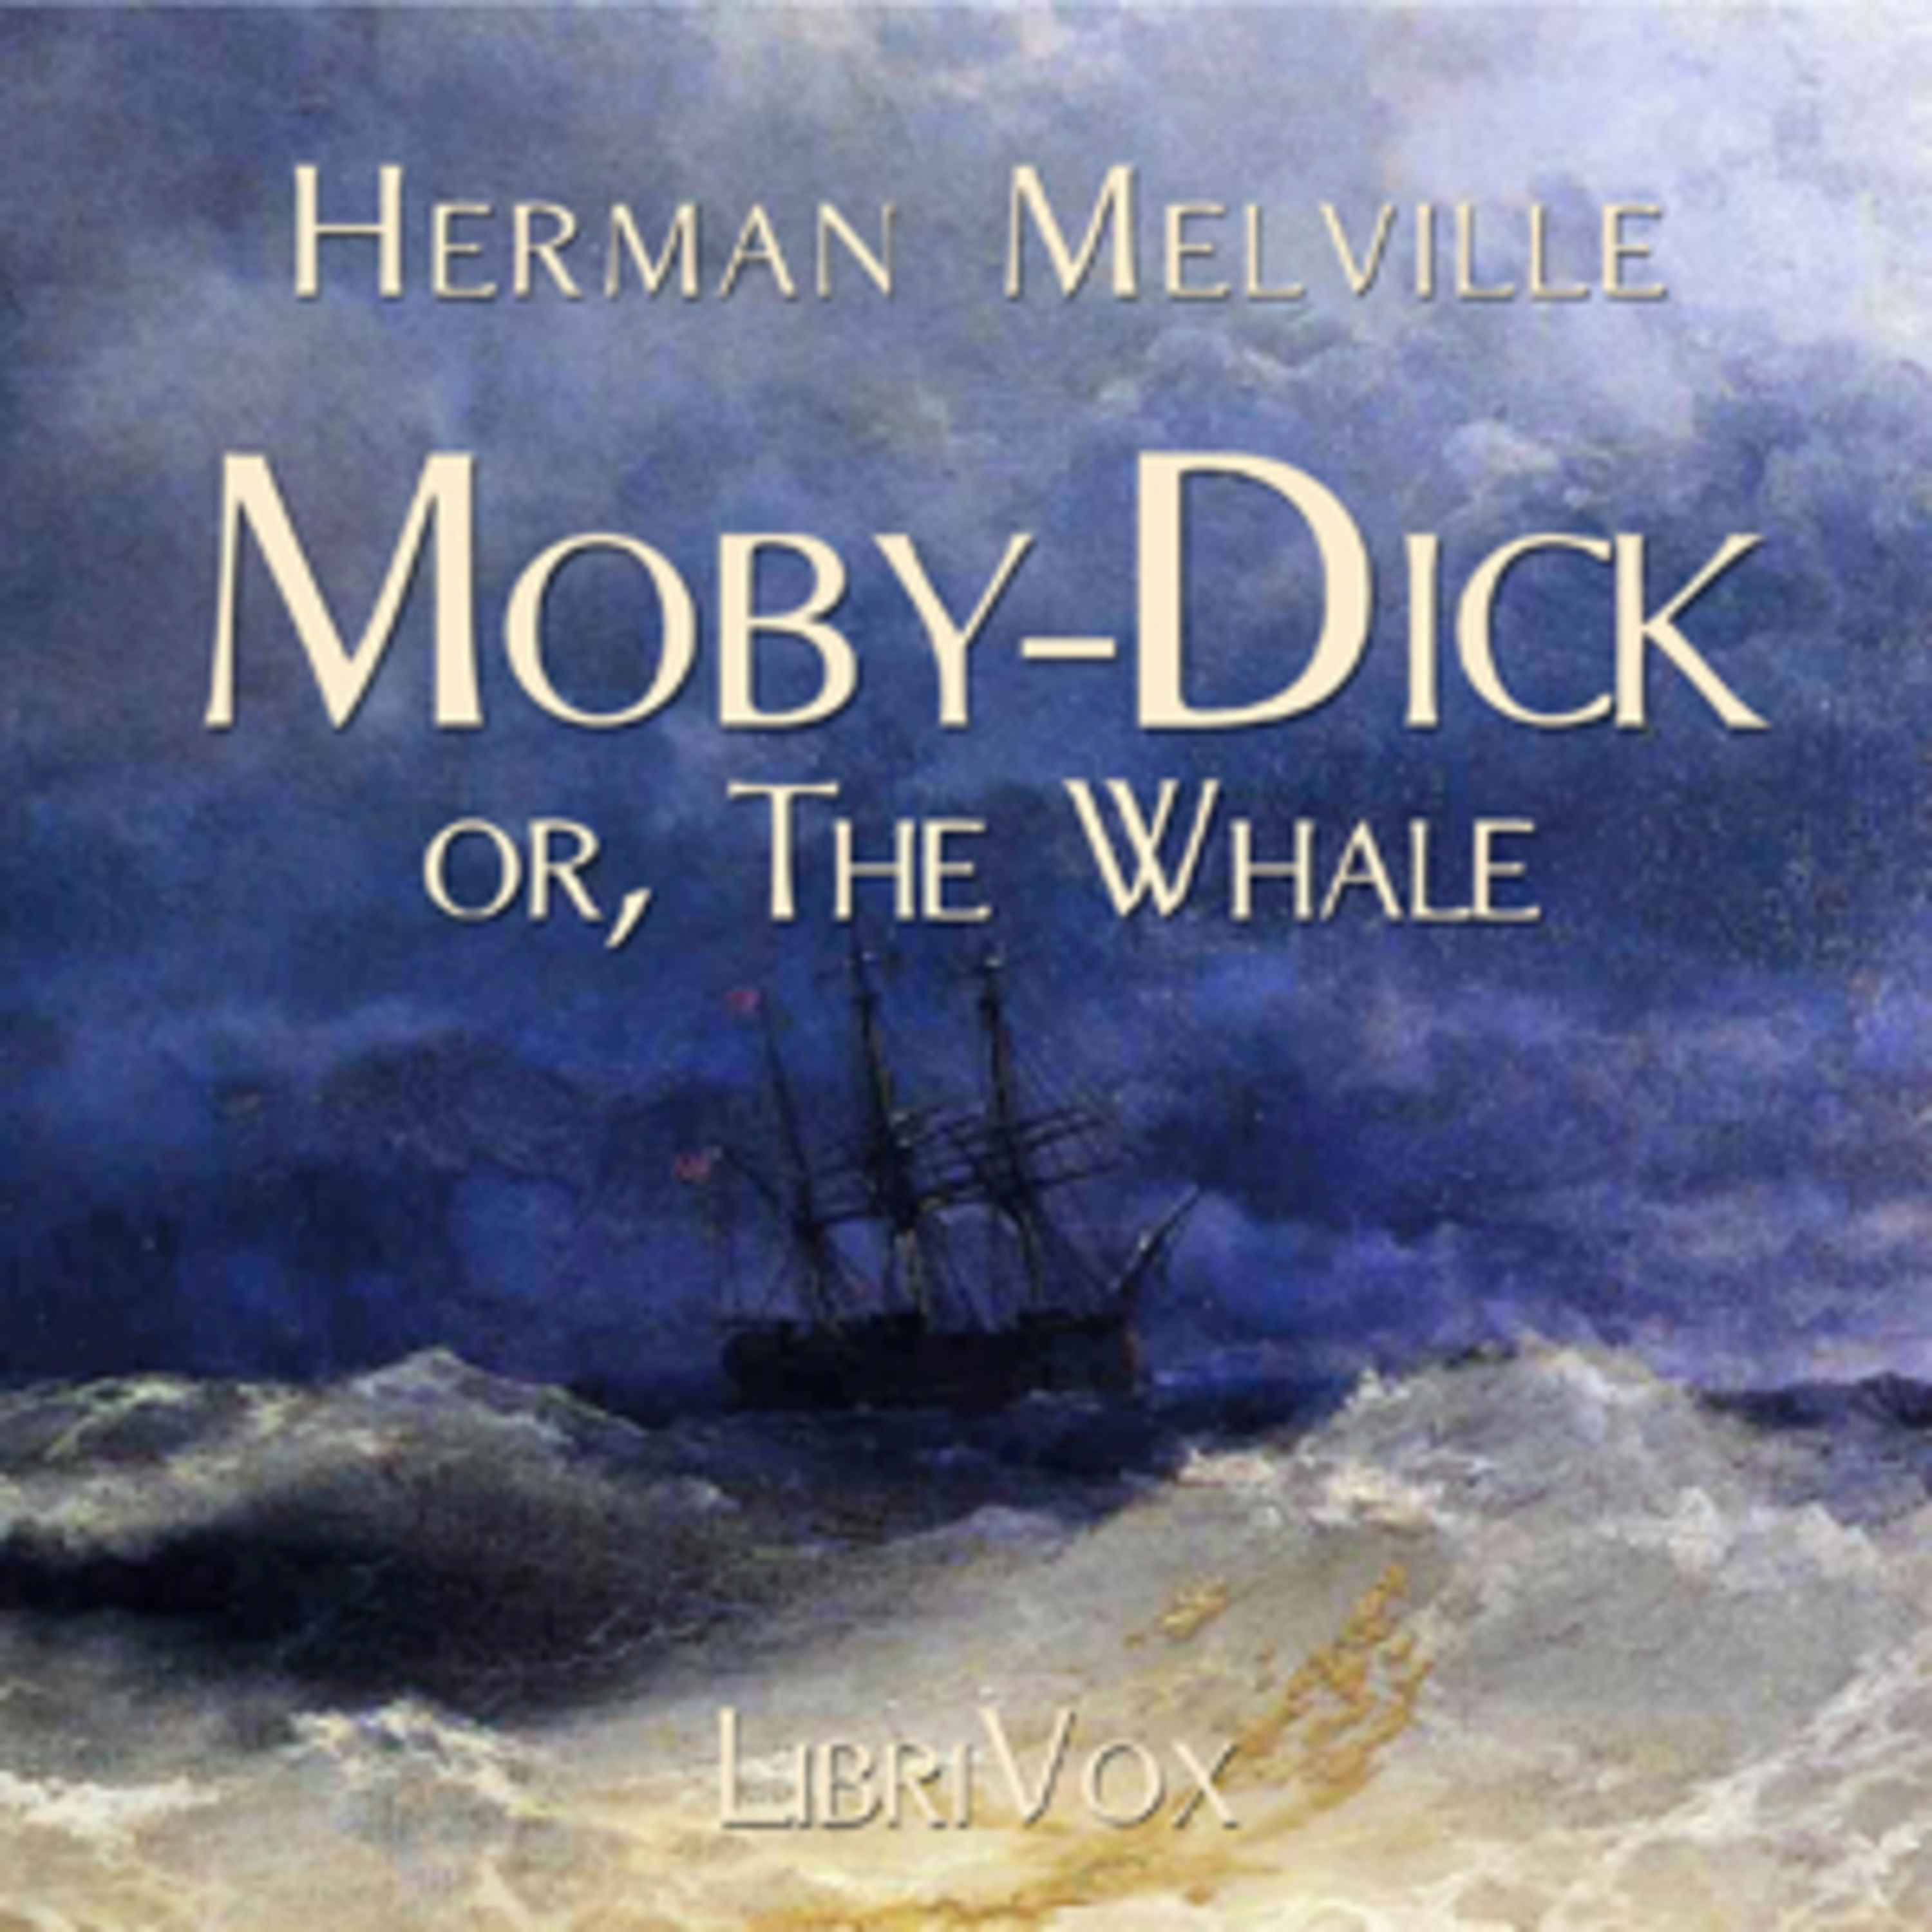 Moby Dick - Herman Melville - Chapters 1-3 - The Whale